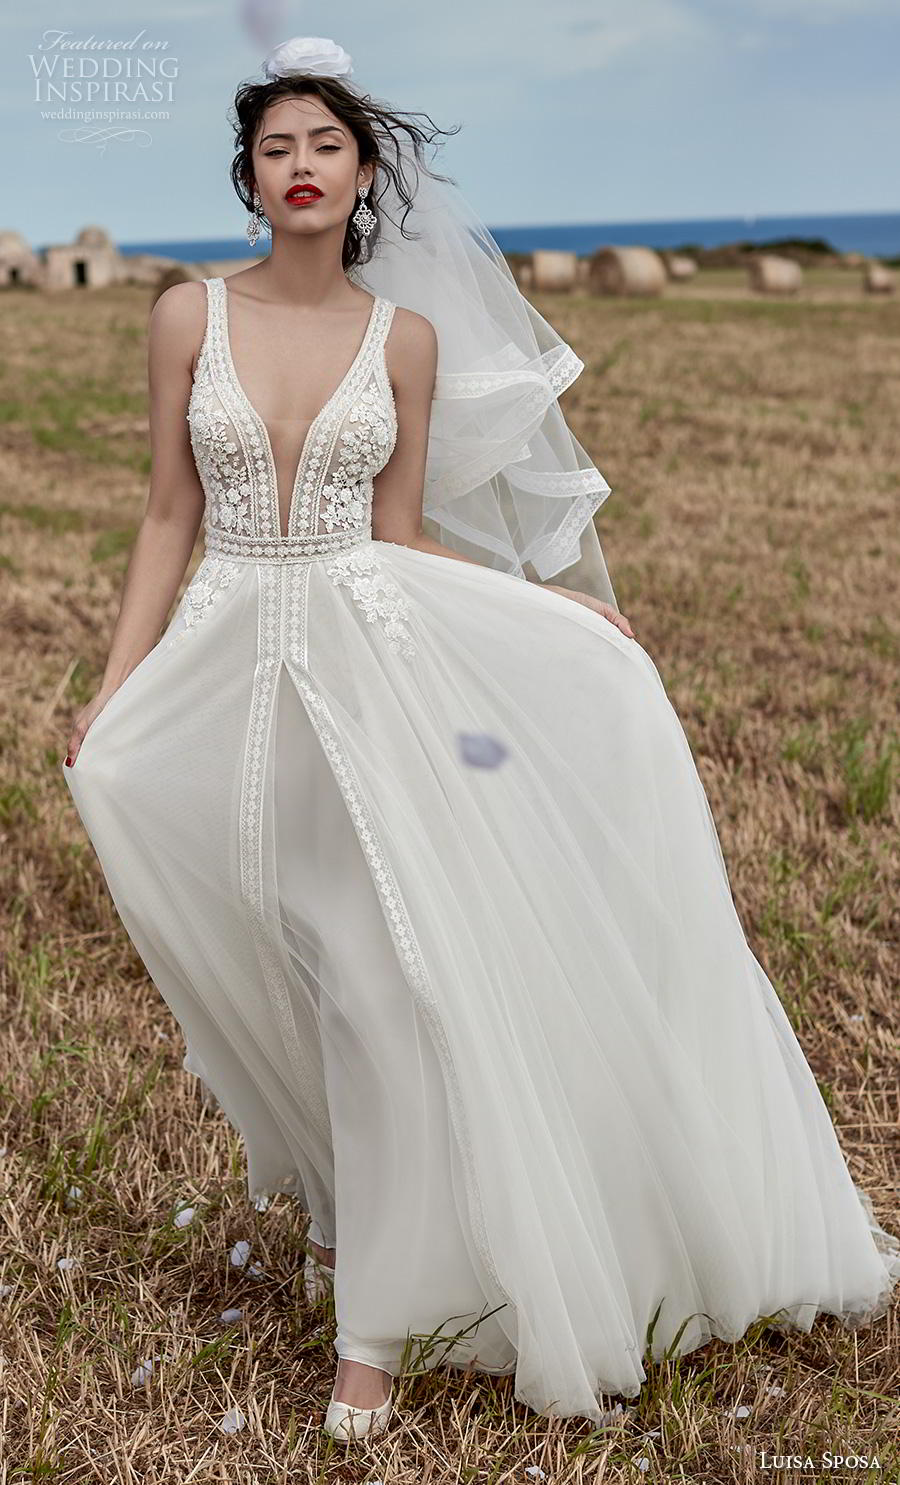 luisa sposa 2020 bridal sleeveless with strap deep plunging v neck heavily embellished bodice open side romantic soft a  line wedding dress sweep train (8) mv